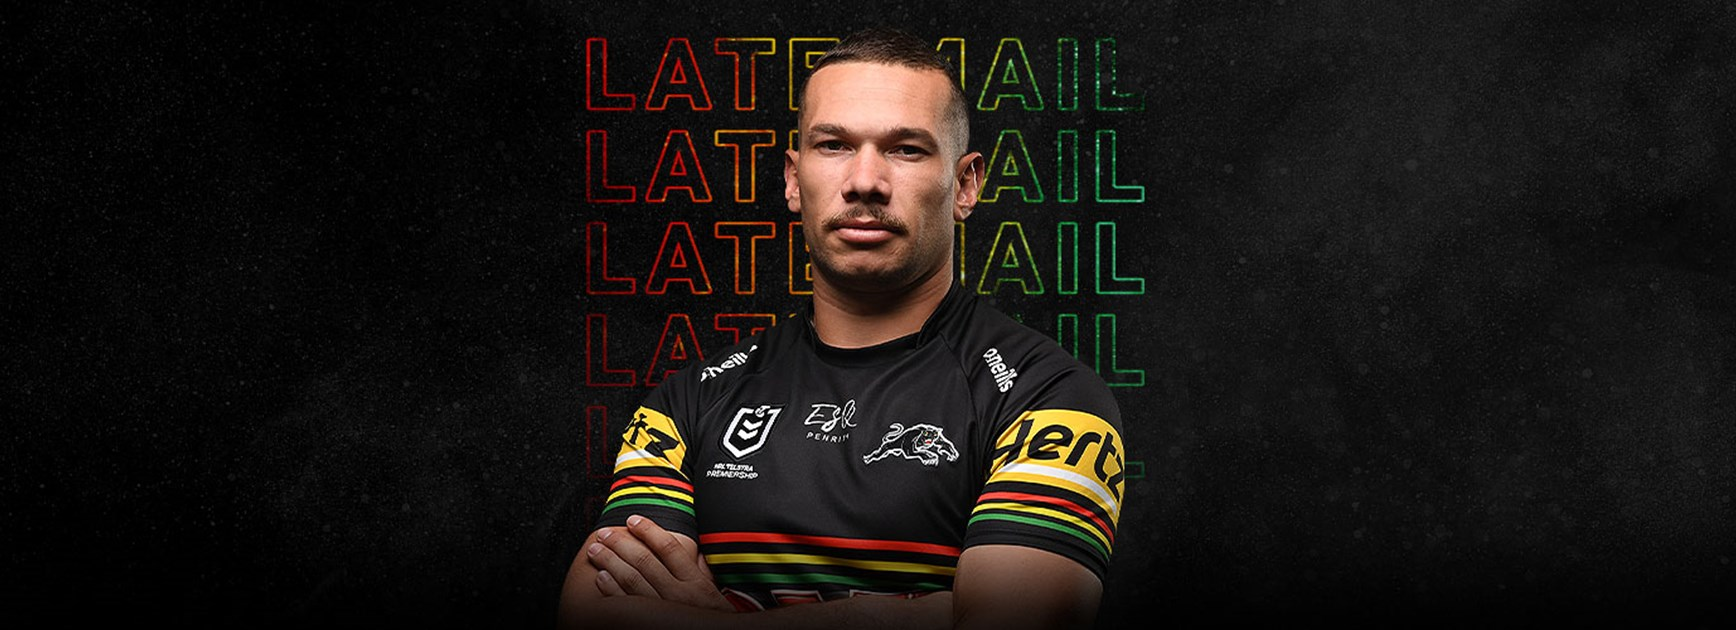 NRL Late Mail: Round 7